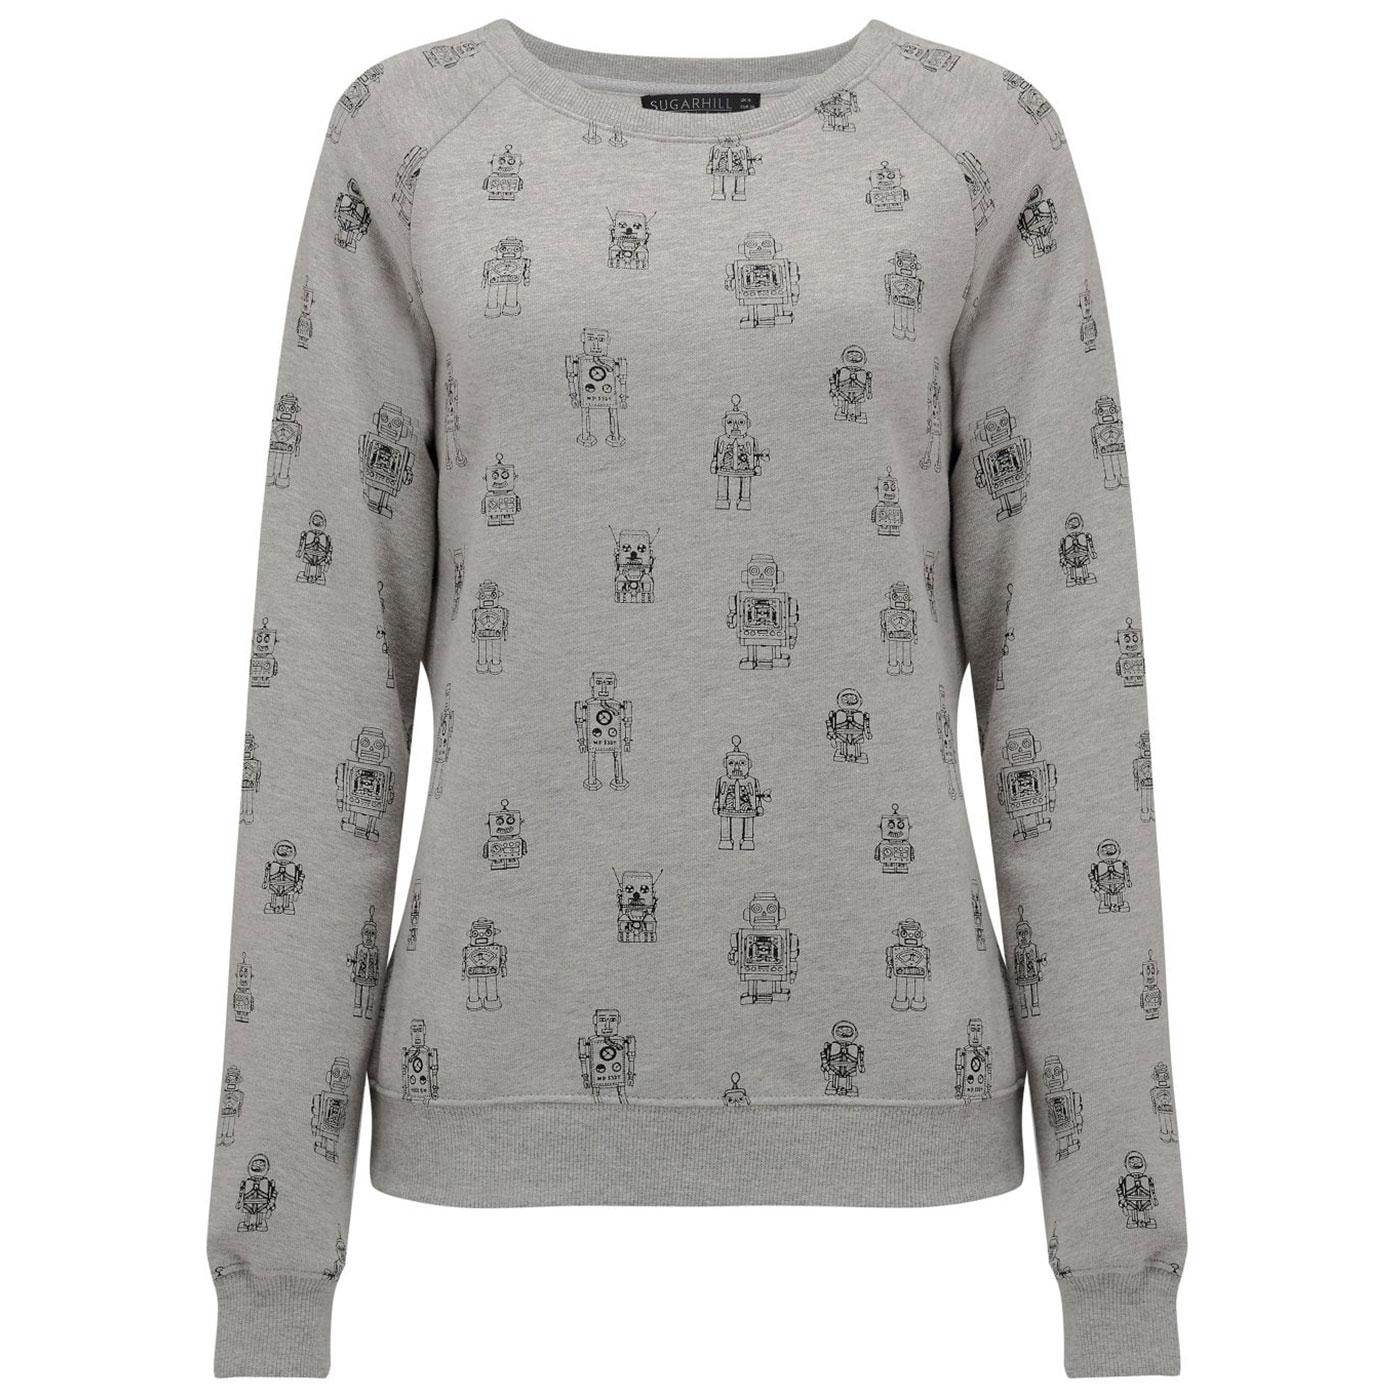 Laurie Robo Pop SUGARHILL BOUTIQUE Sweatshirt Grey